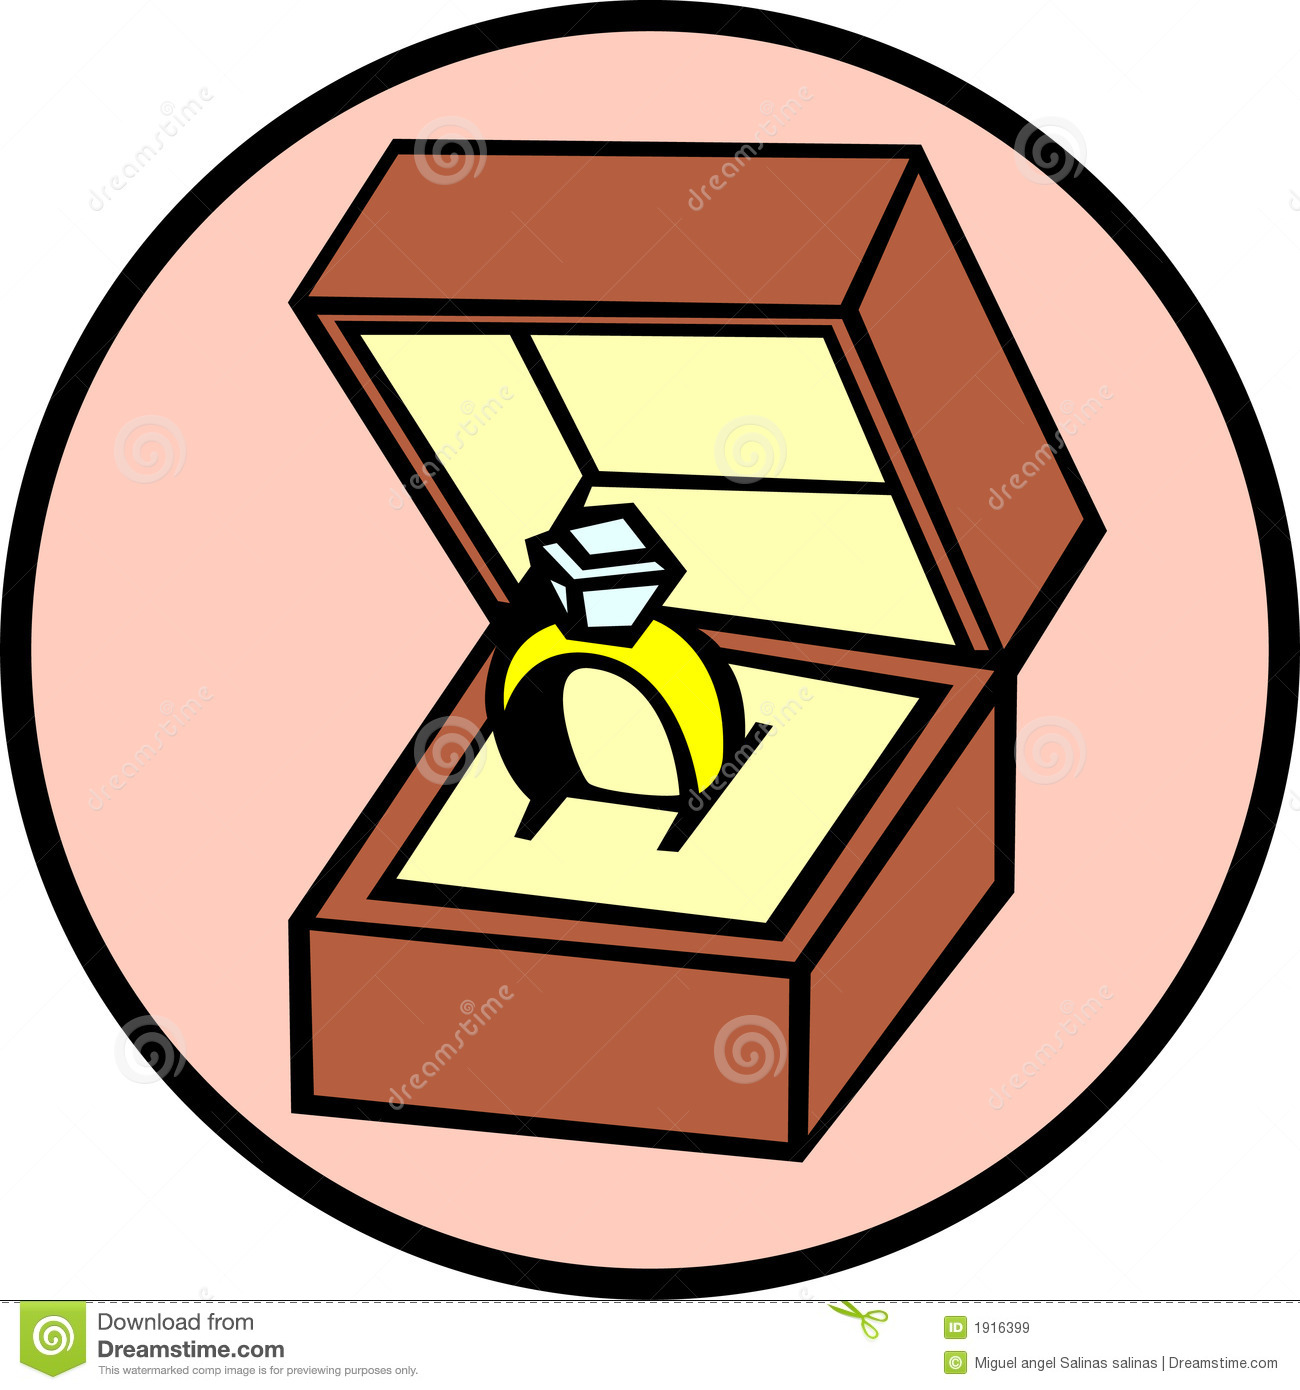 two gold resting portfolio of by bridal wedding derocz clipart illustration dero rings together